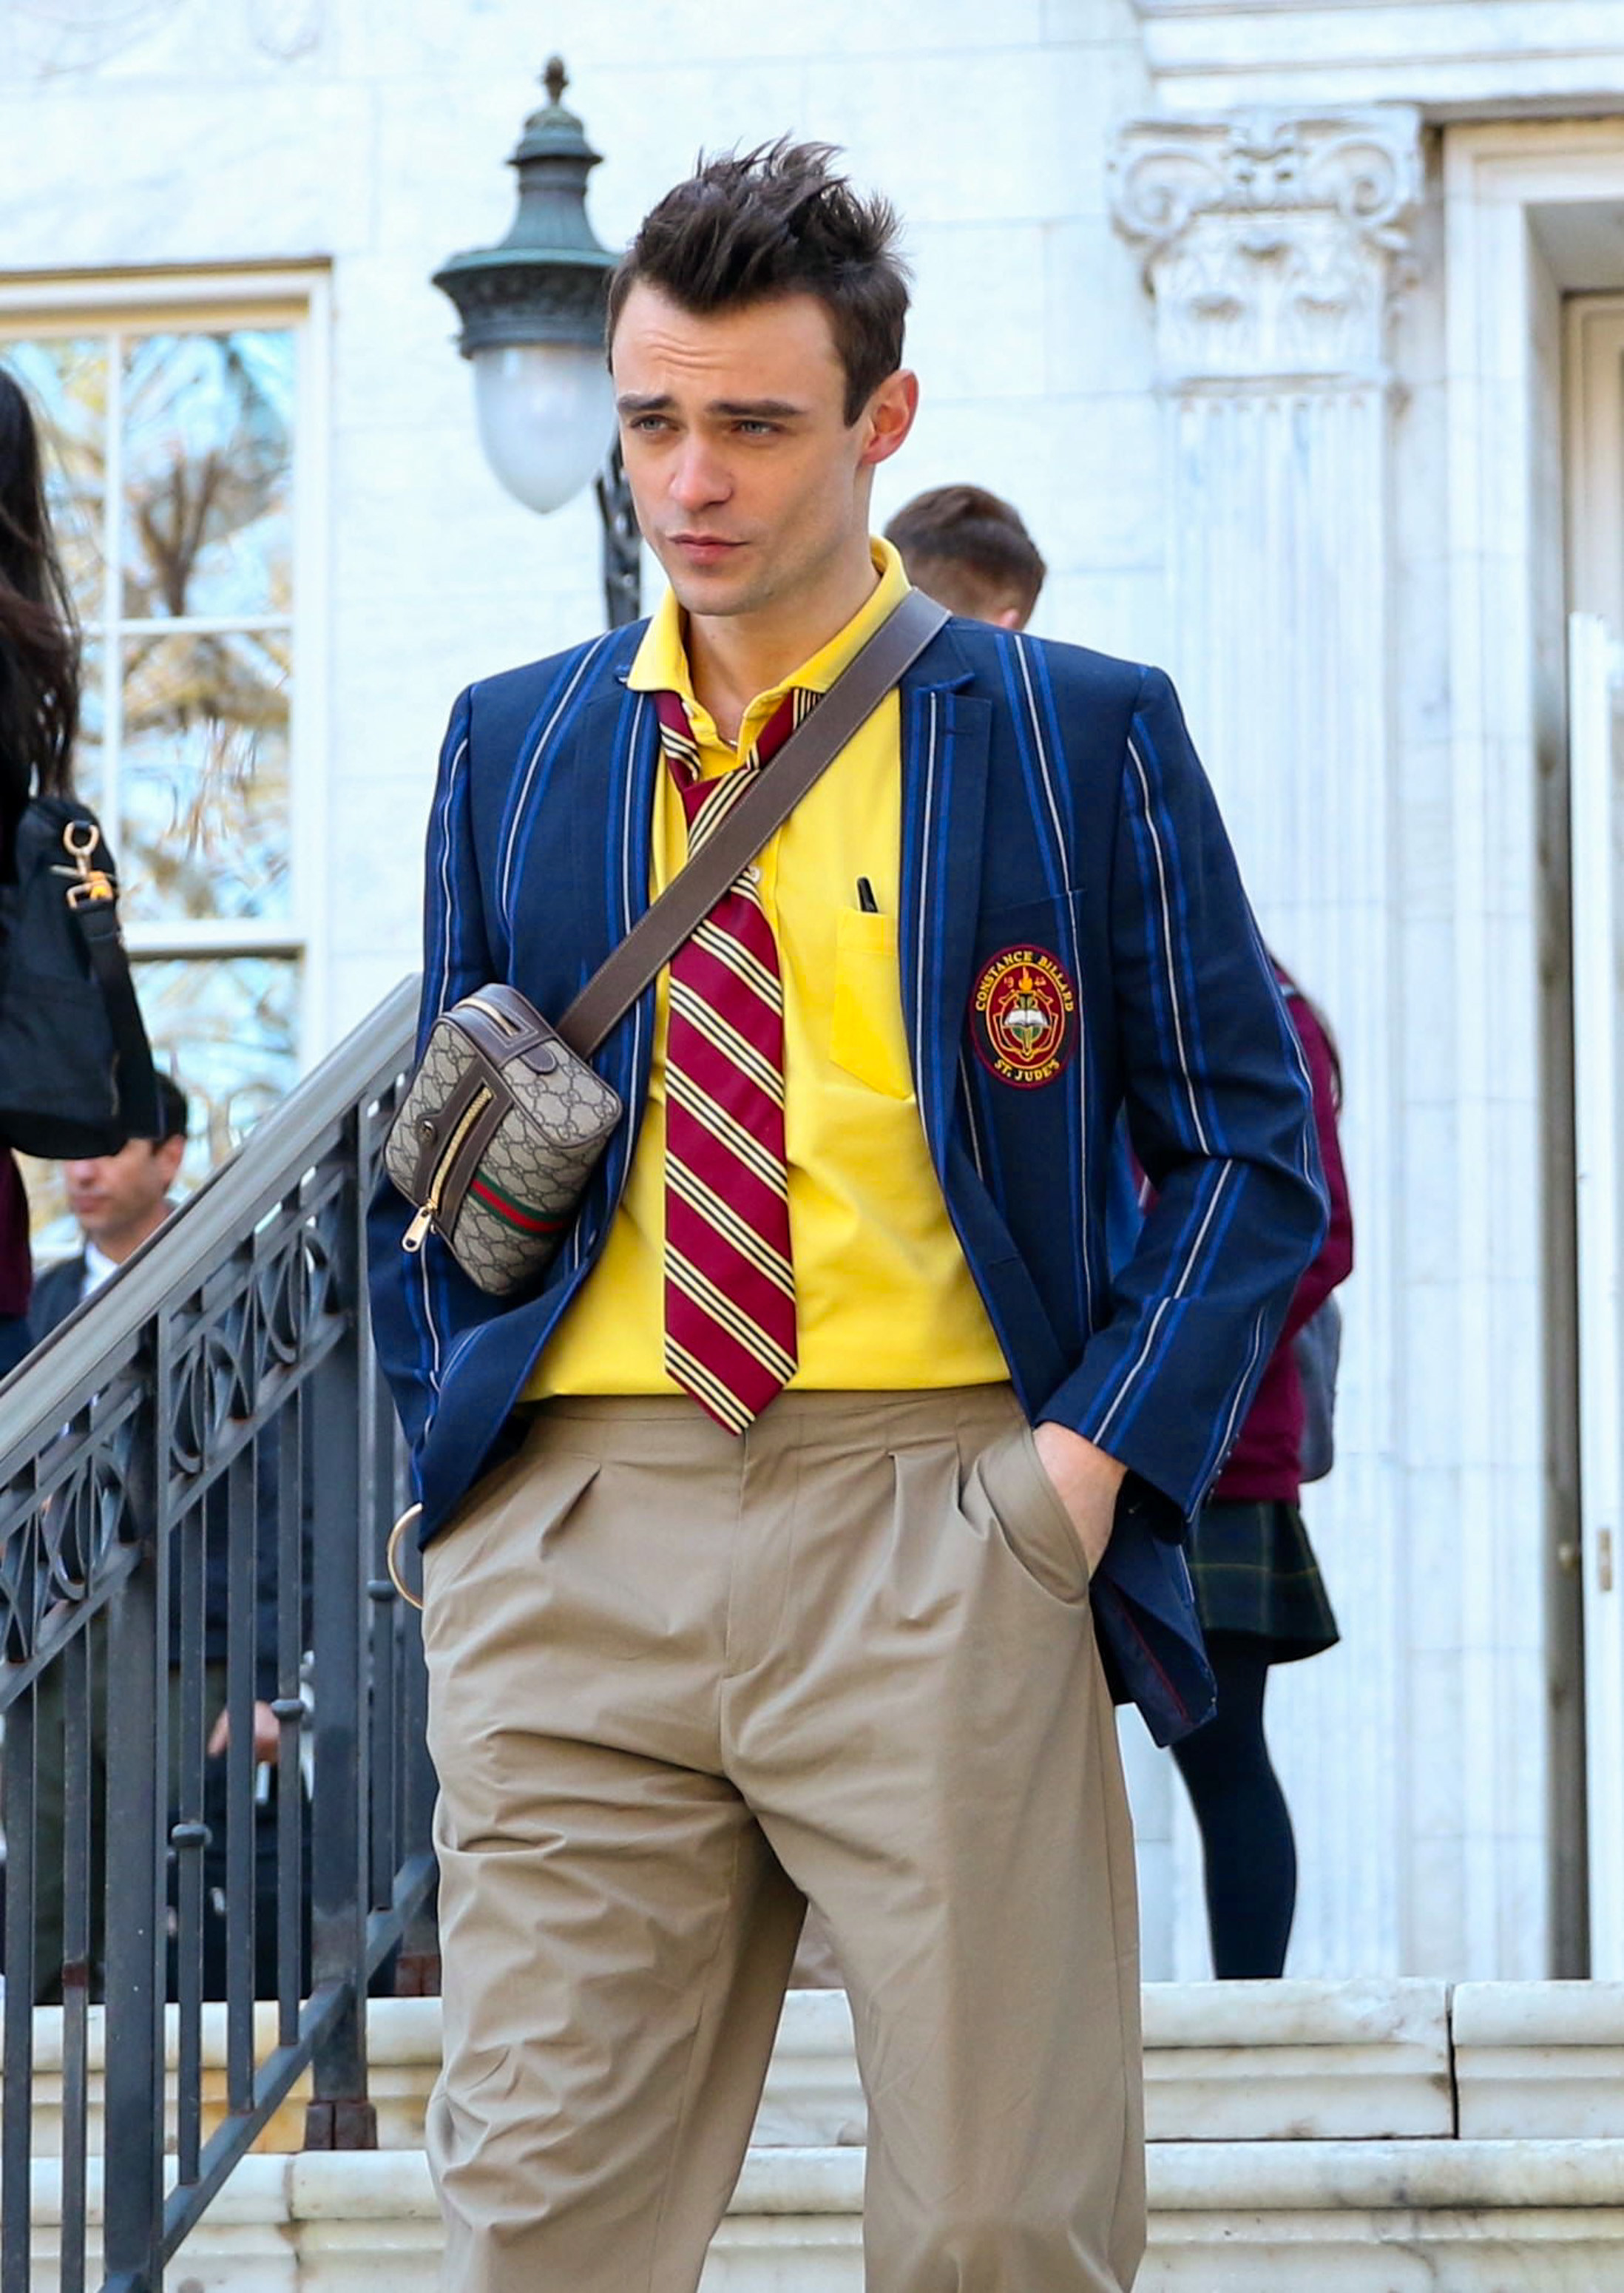 Thomas Doherty is seen at the film set of the 'Gossip Girl' TV Series on April 05, 2021 in New York City